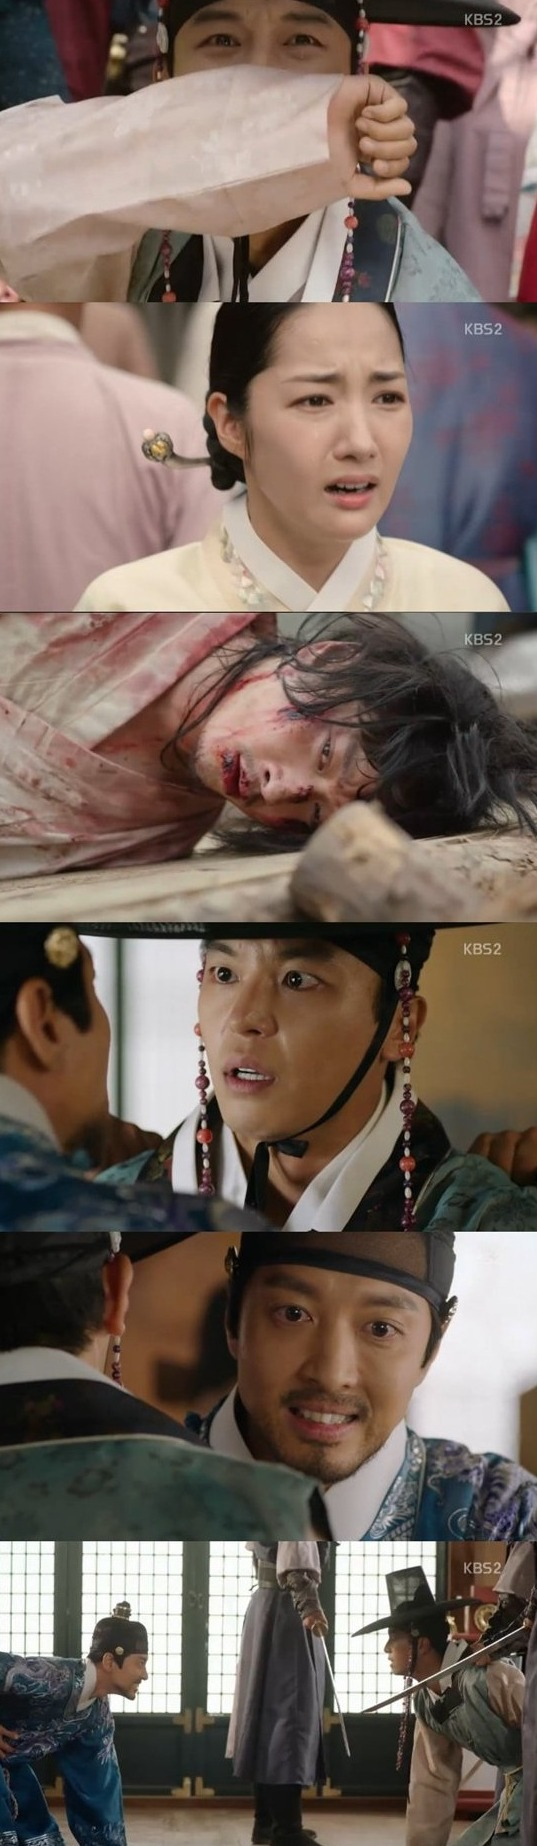 [Spoiler] Added episode 16 captures for the Korean drama 'Queen for 7 Days'